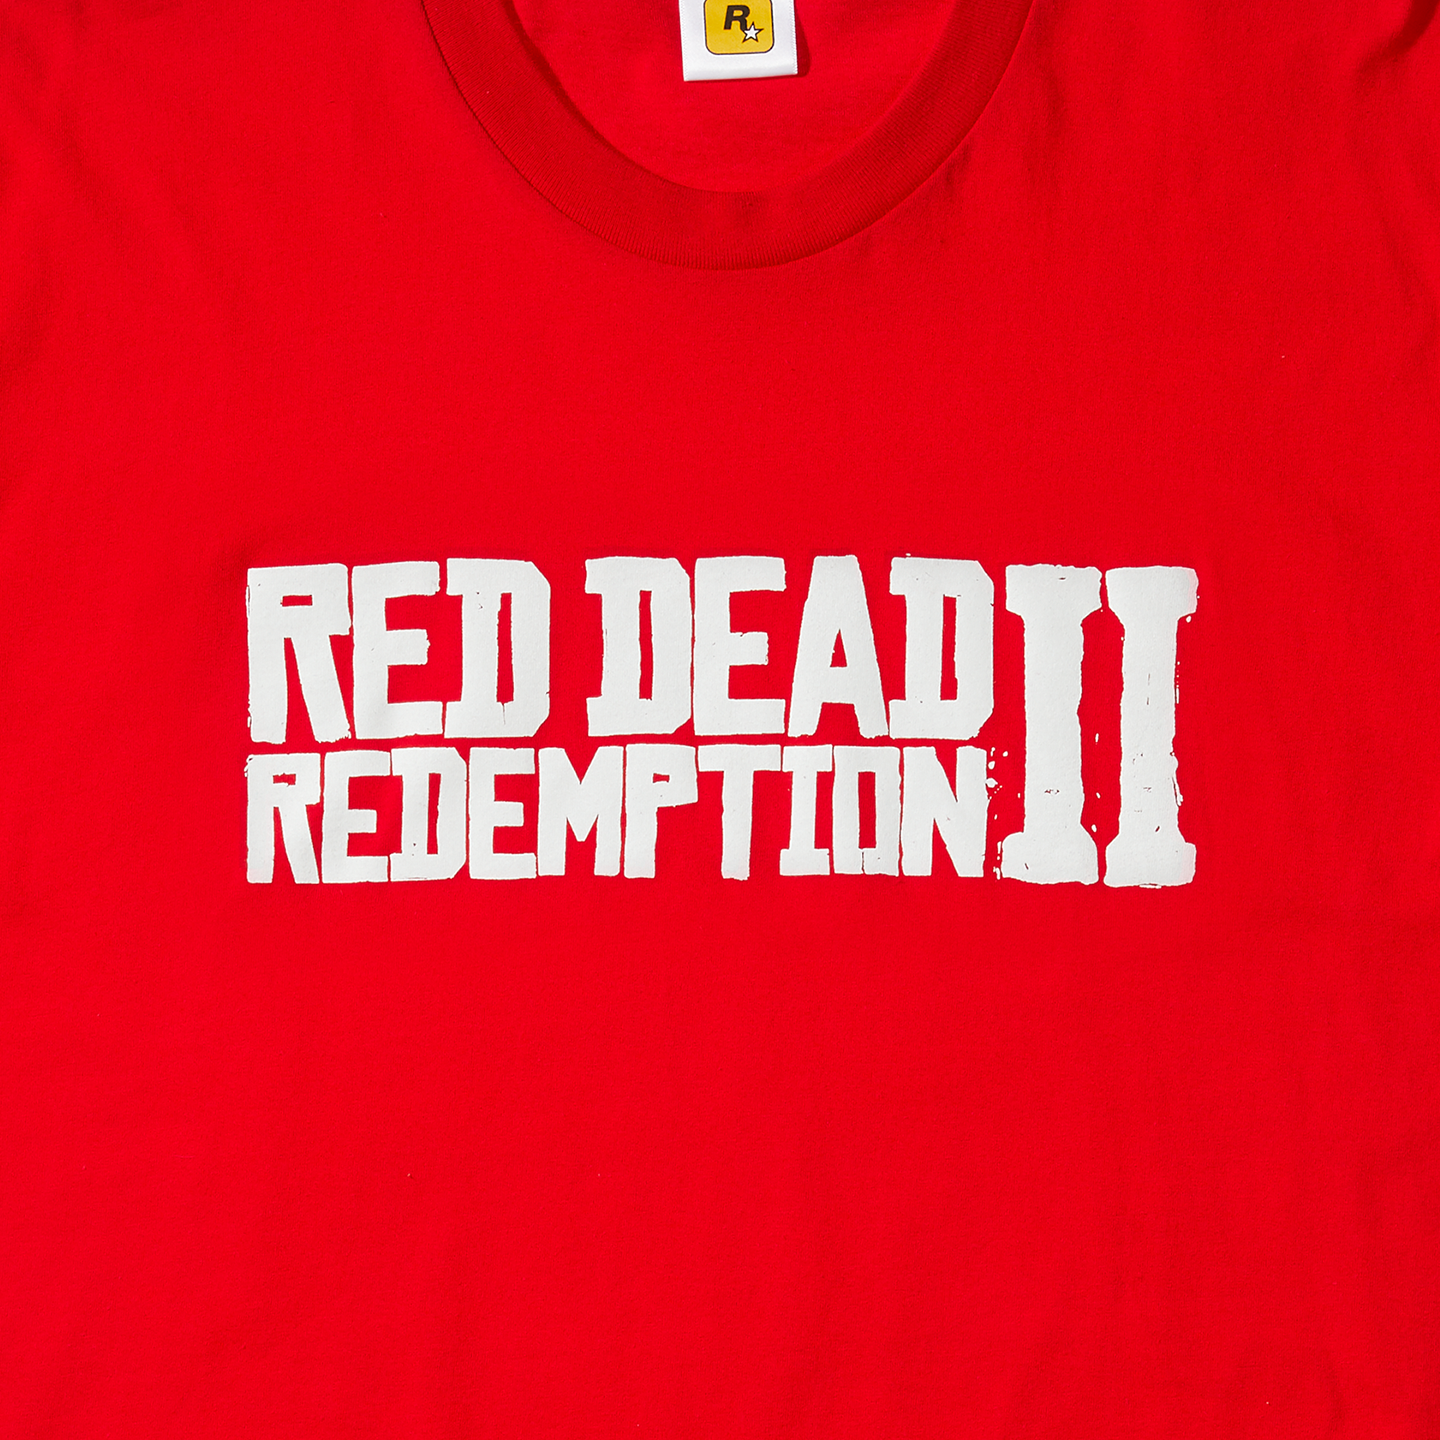 White on Red, Red Dead Redemption 2 Logo Tee